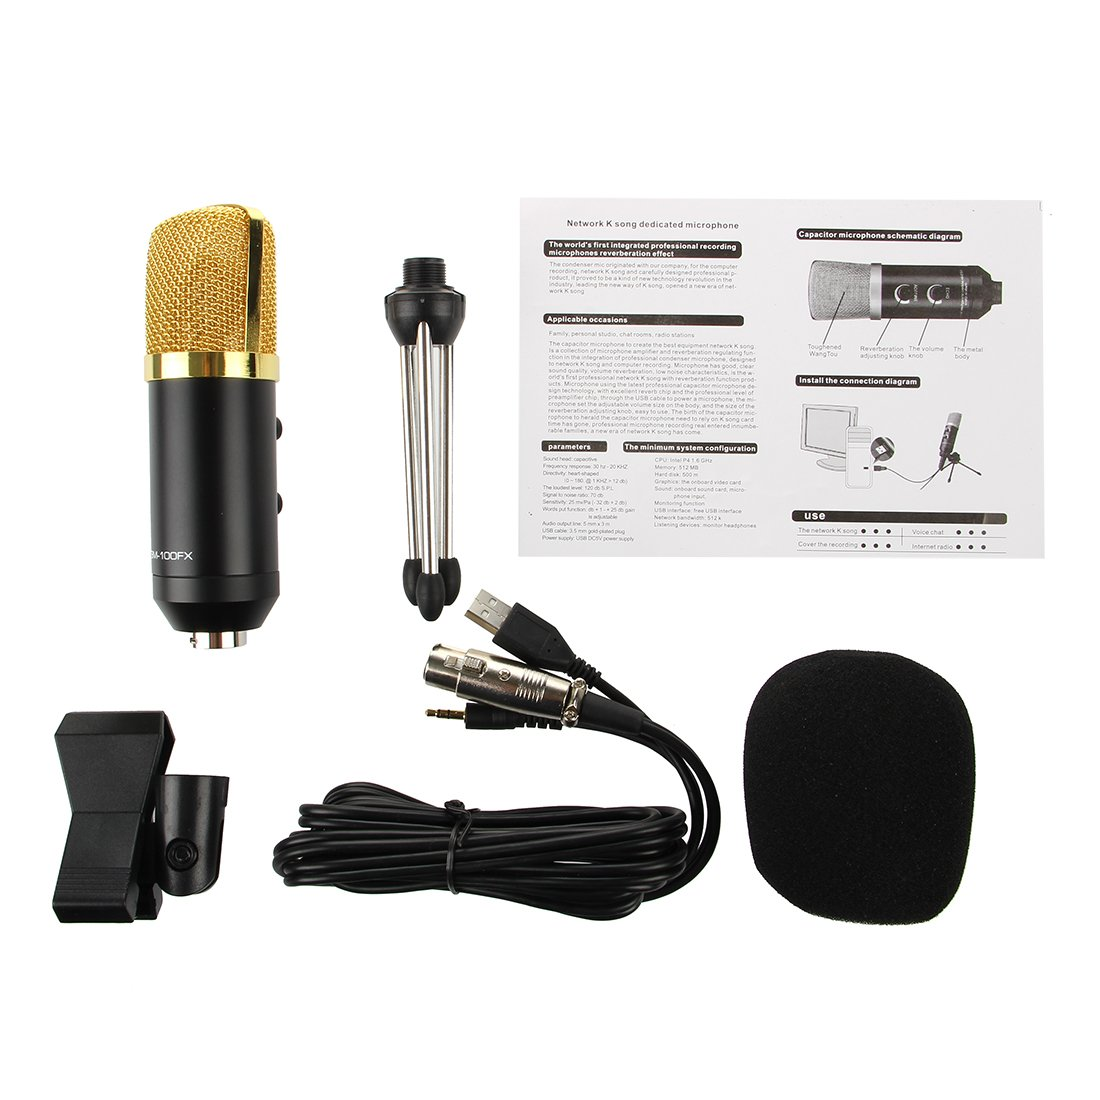 Sodial Usb Studio Condenser Recording Miniphone With Microphone Schematic On Wiring Diagram Sponge Sets Audio Cable Tripod Electronics